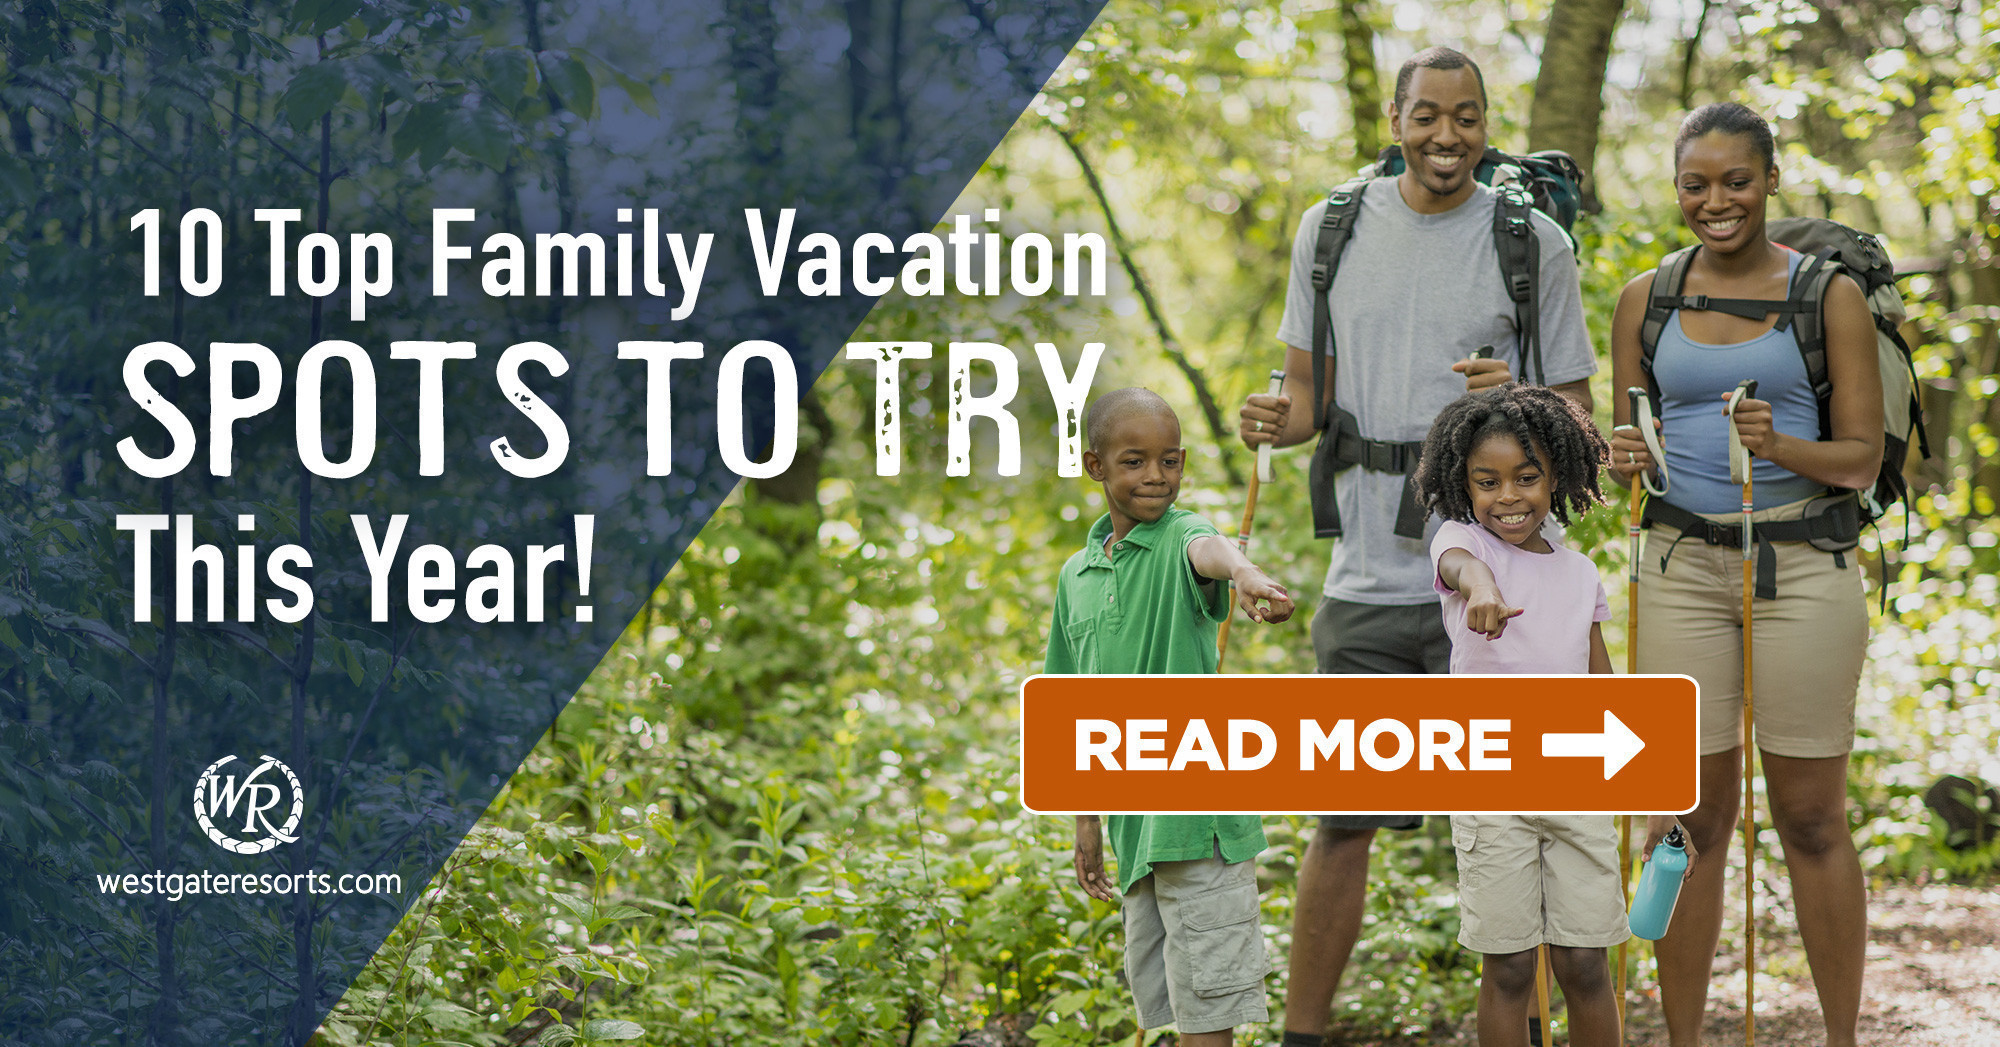 10 Top Family Vacation Spots to Try This Year